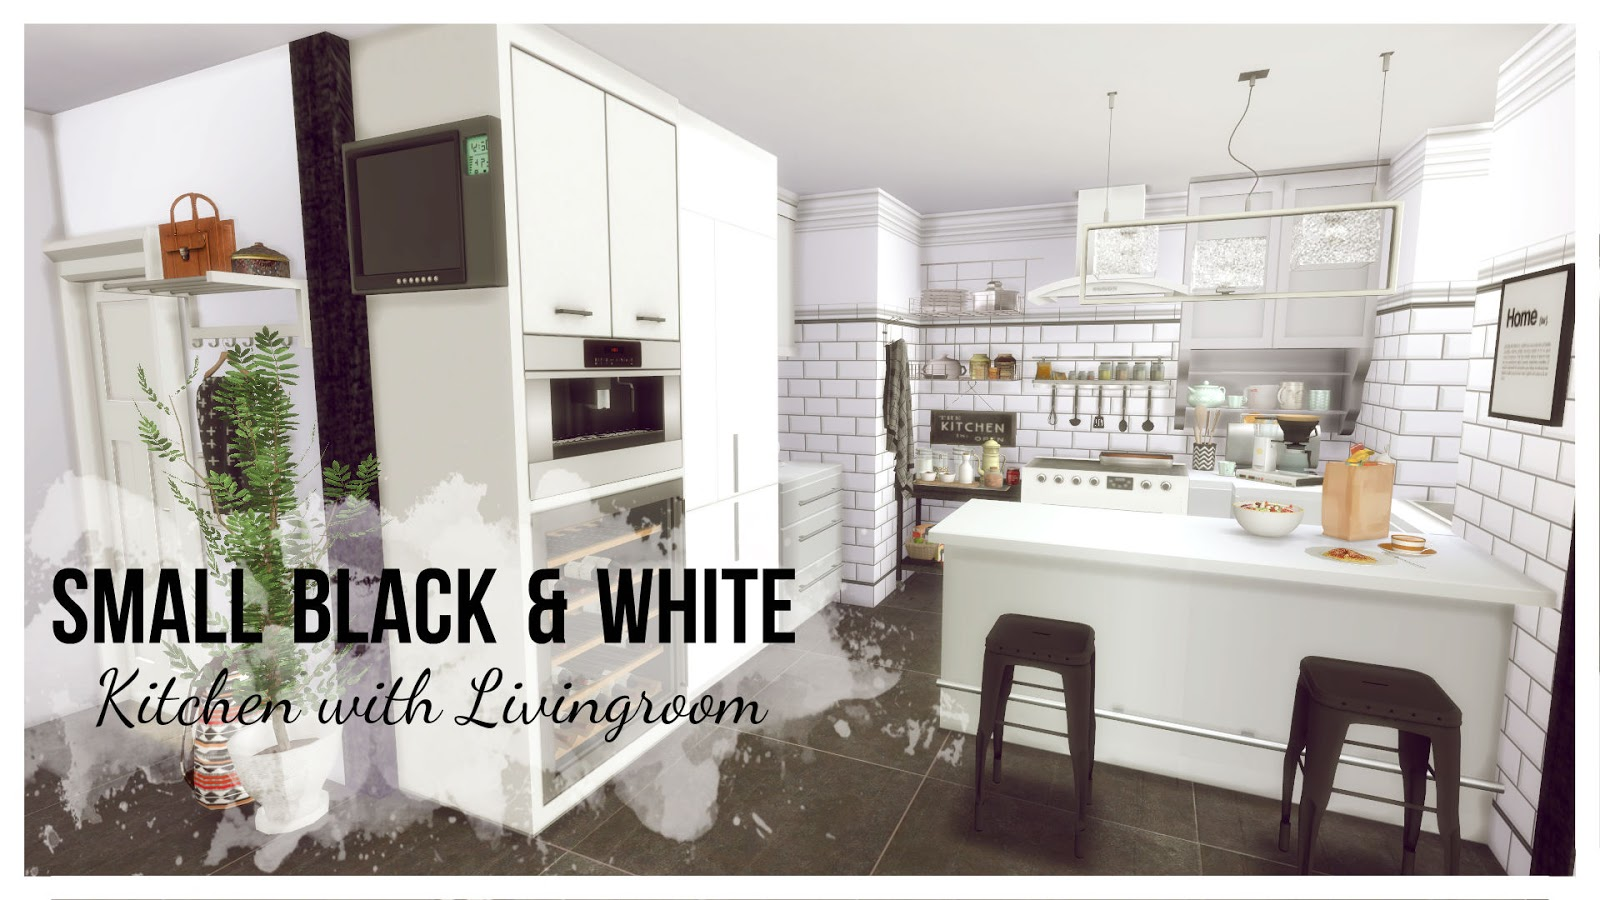 Sims 4 - Small Black & White Kitchen with Livingroom (Room ...